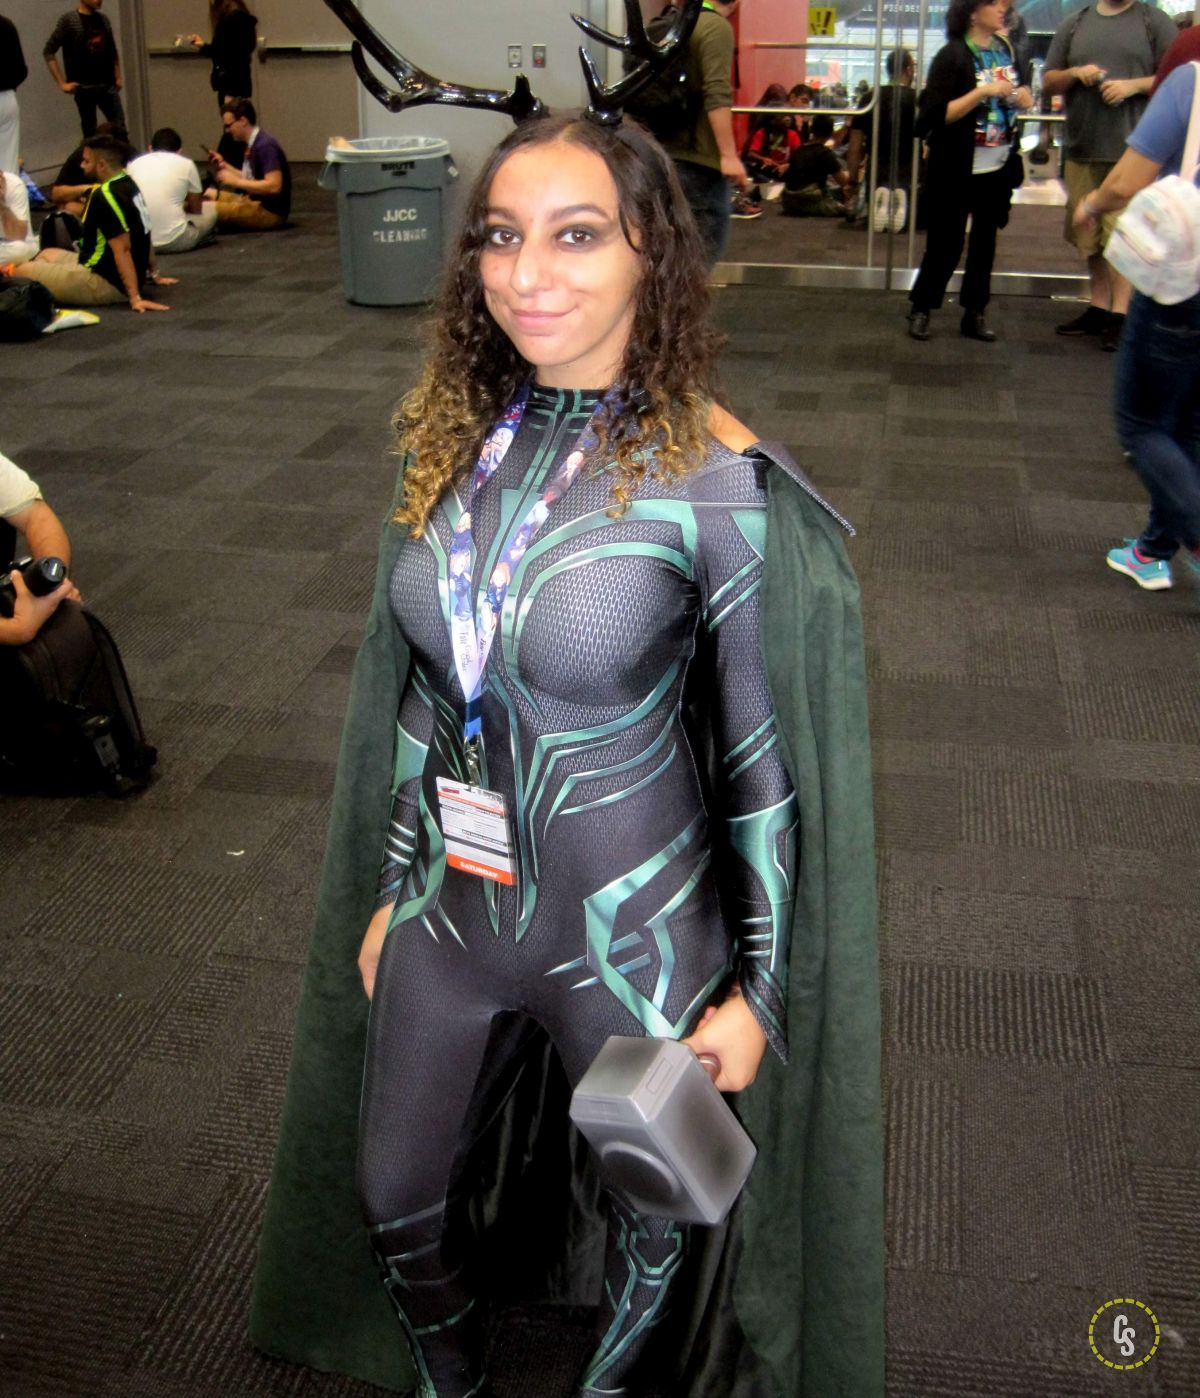 nycc183_069